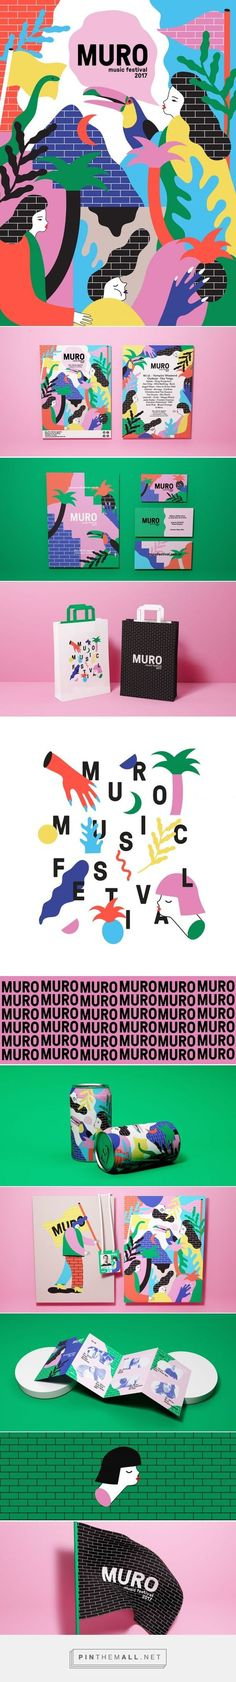 (17) Muro Music Festival Branding by Giovani Flores | Fivestar Branding Agency – Design and Branding Agency & Curated Inspiration Gallery | https://lome… | Pinterest